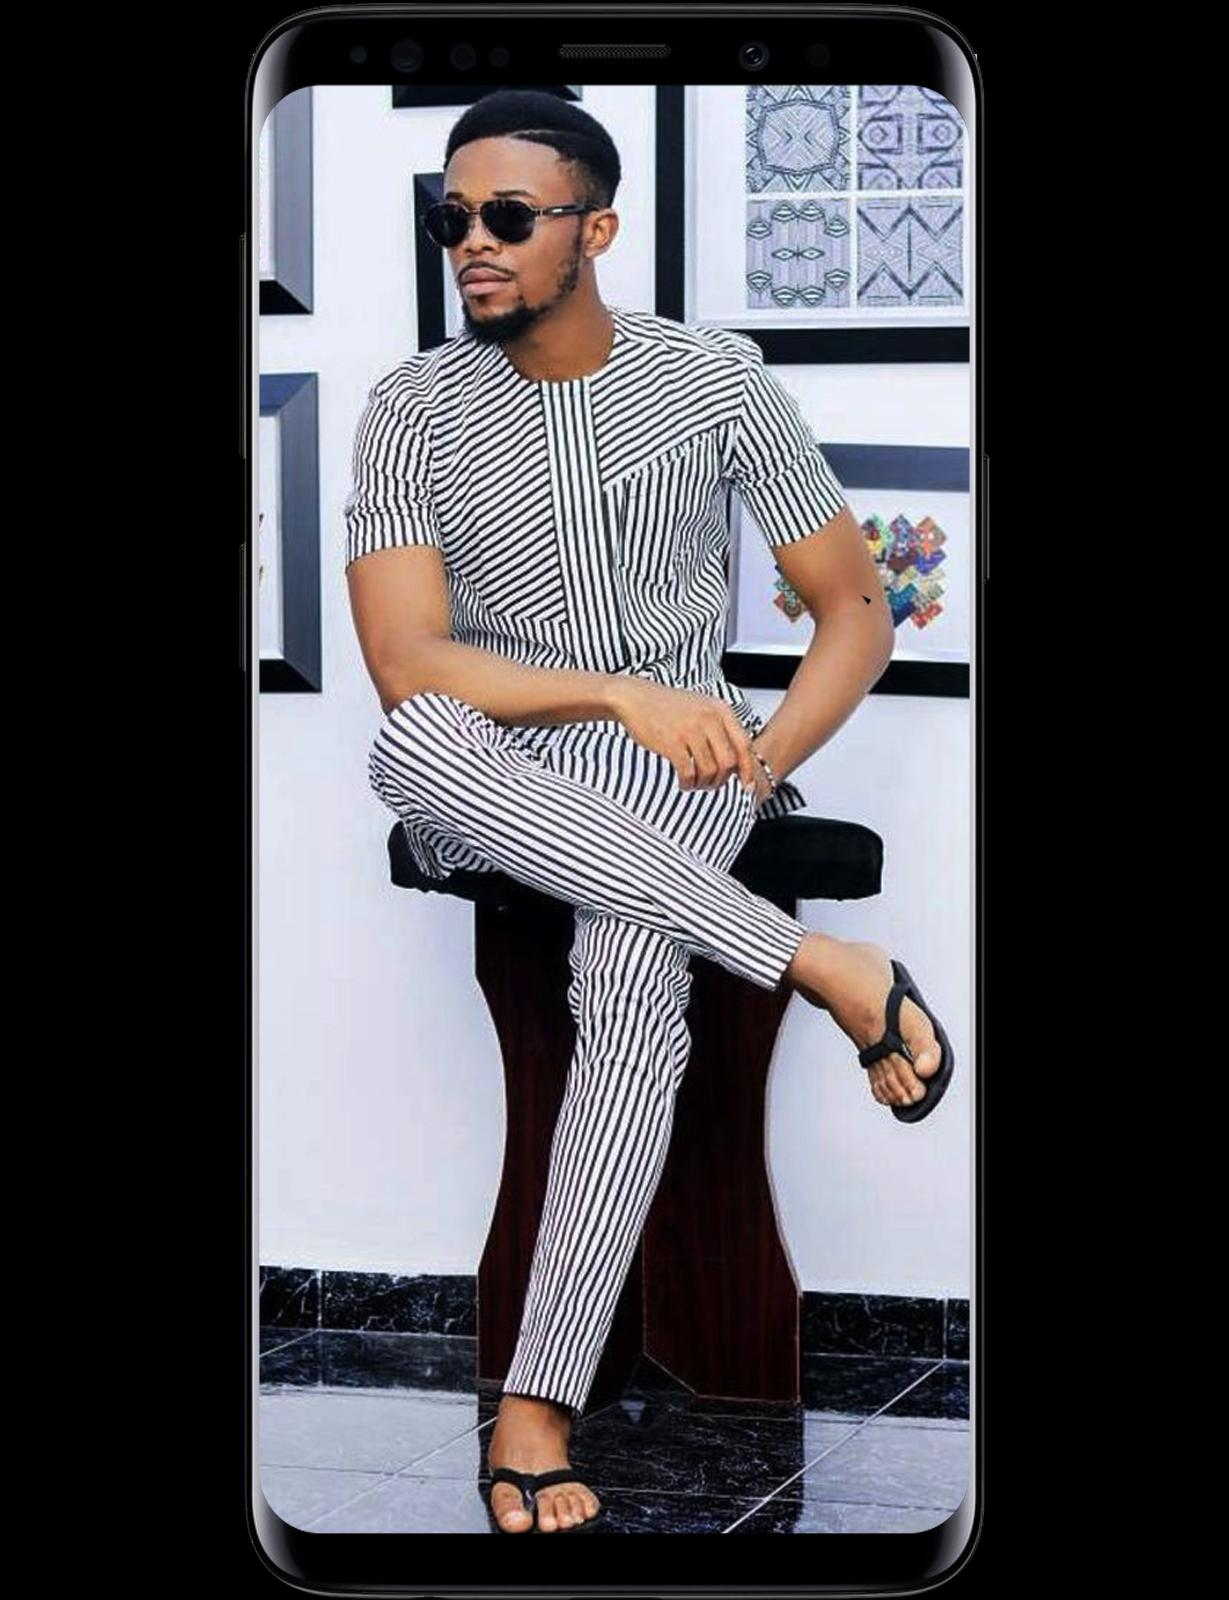 African Men Clothing Styles For Android Apk Download